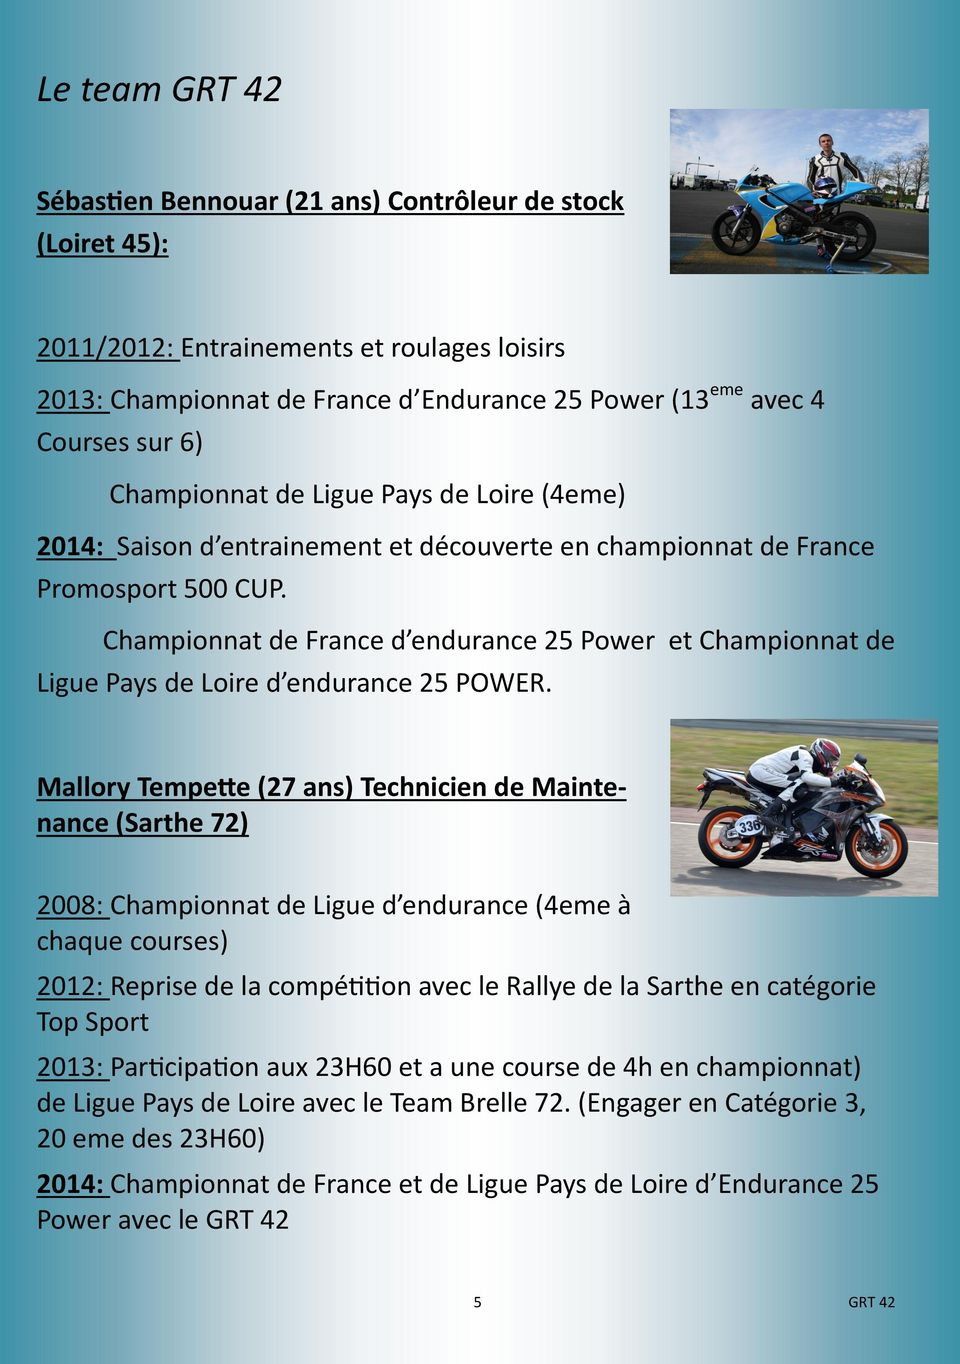 Championnat de France d endurance 25 Power et Championnat de Ligue Pays de Loire d endurance 25 POWER.